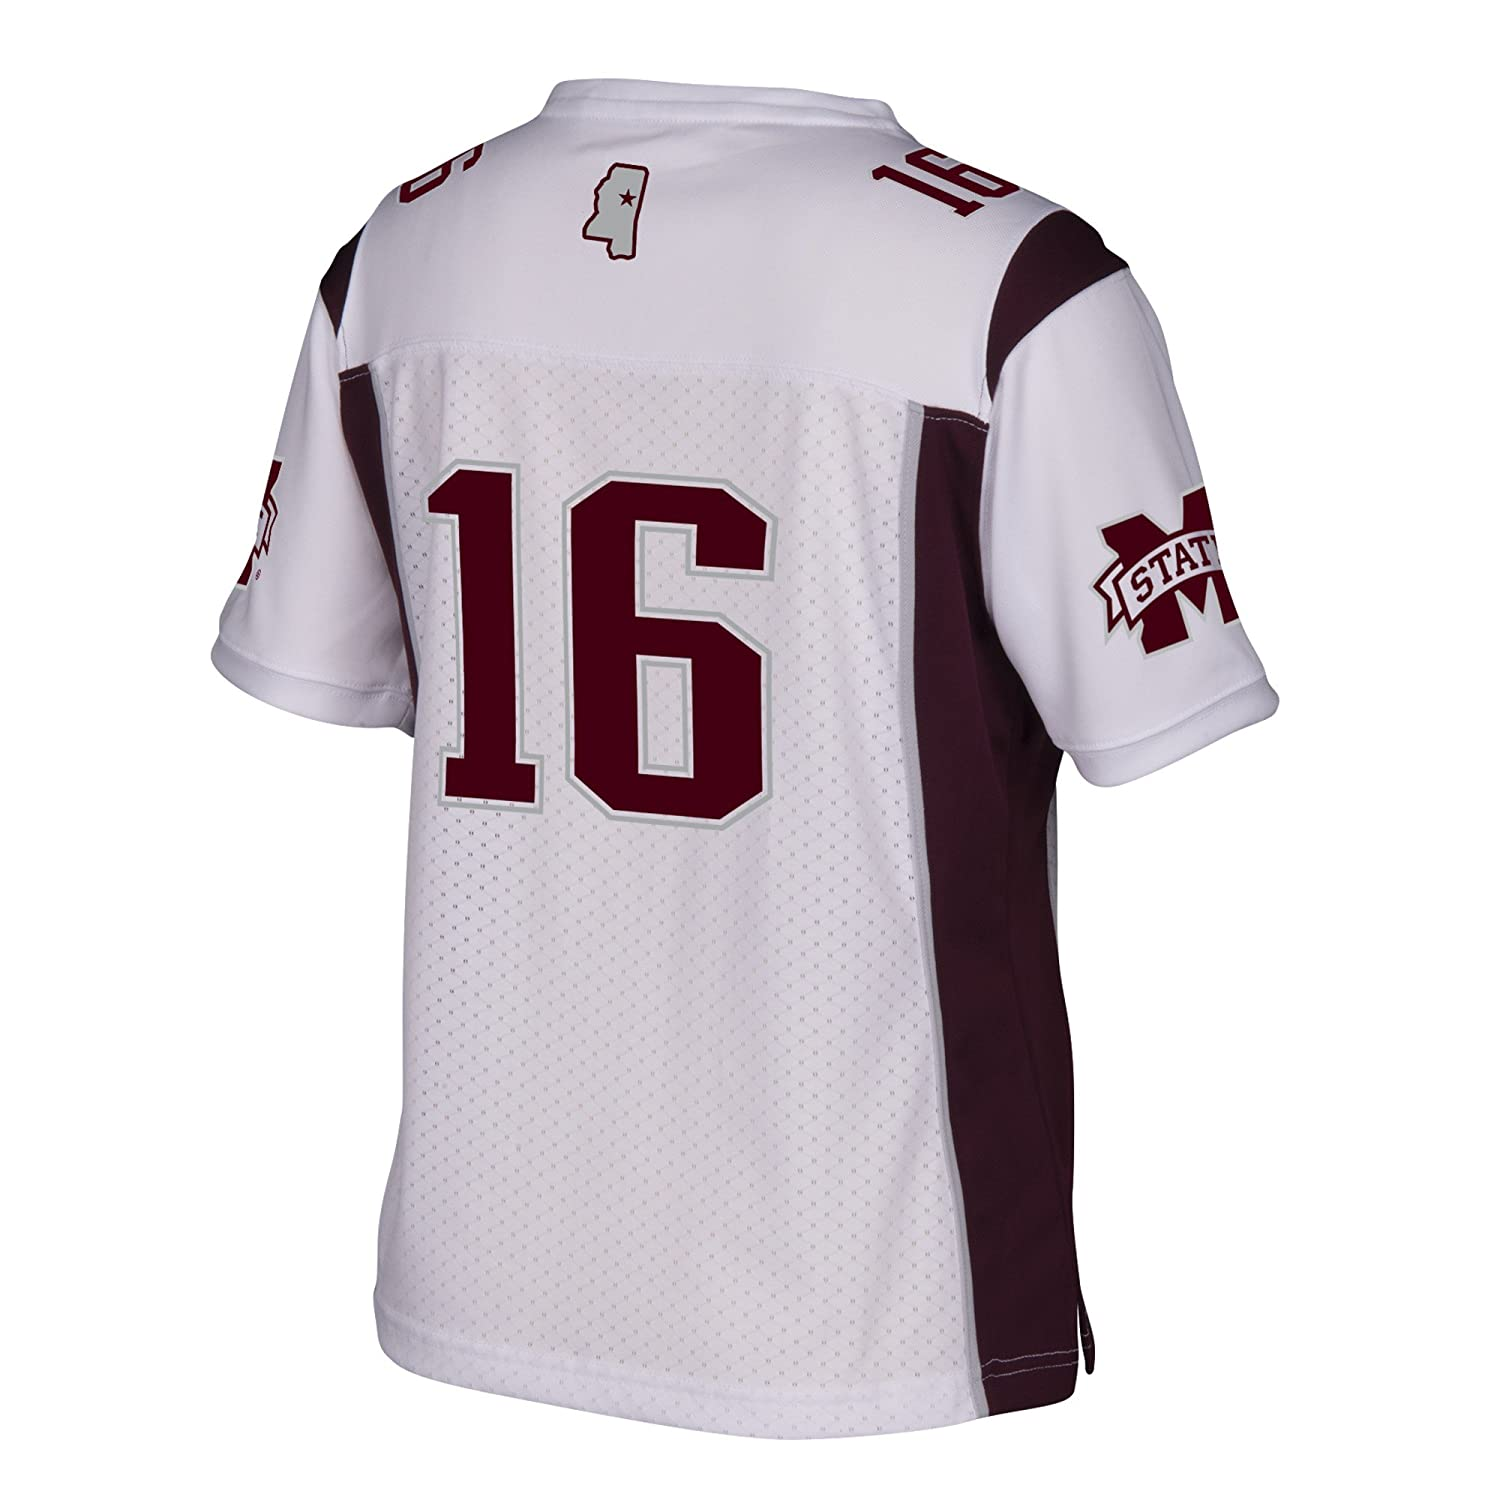 White Small 7659W YV1 Adidas NCAA Mississippi State Bulldogs